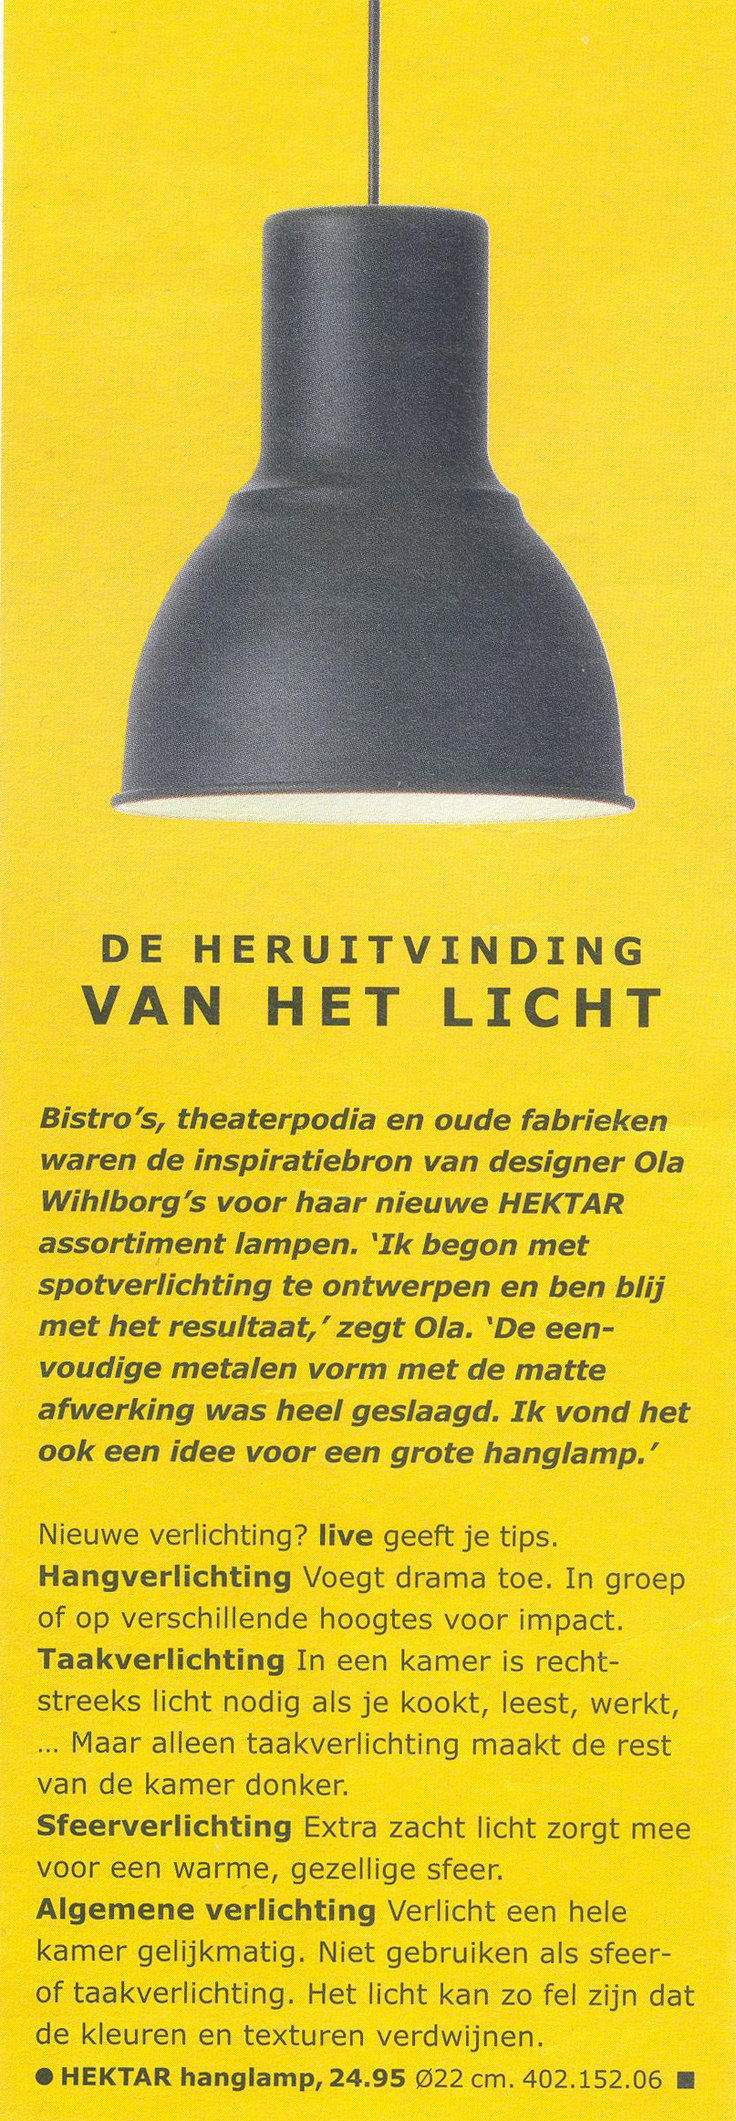 Pipe 3 led suspension lamp decor walther ambientedirect com - Ikea Hanglamp